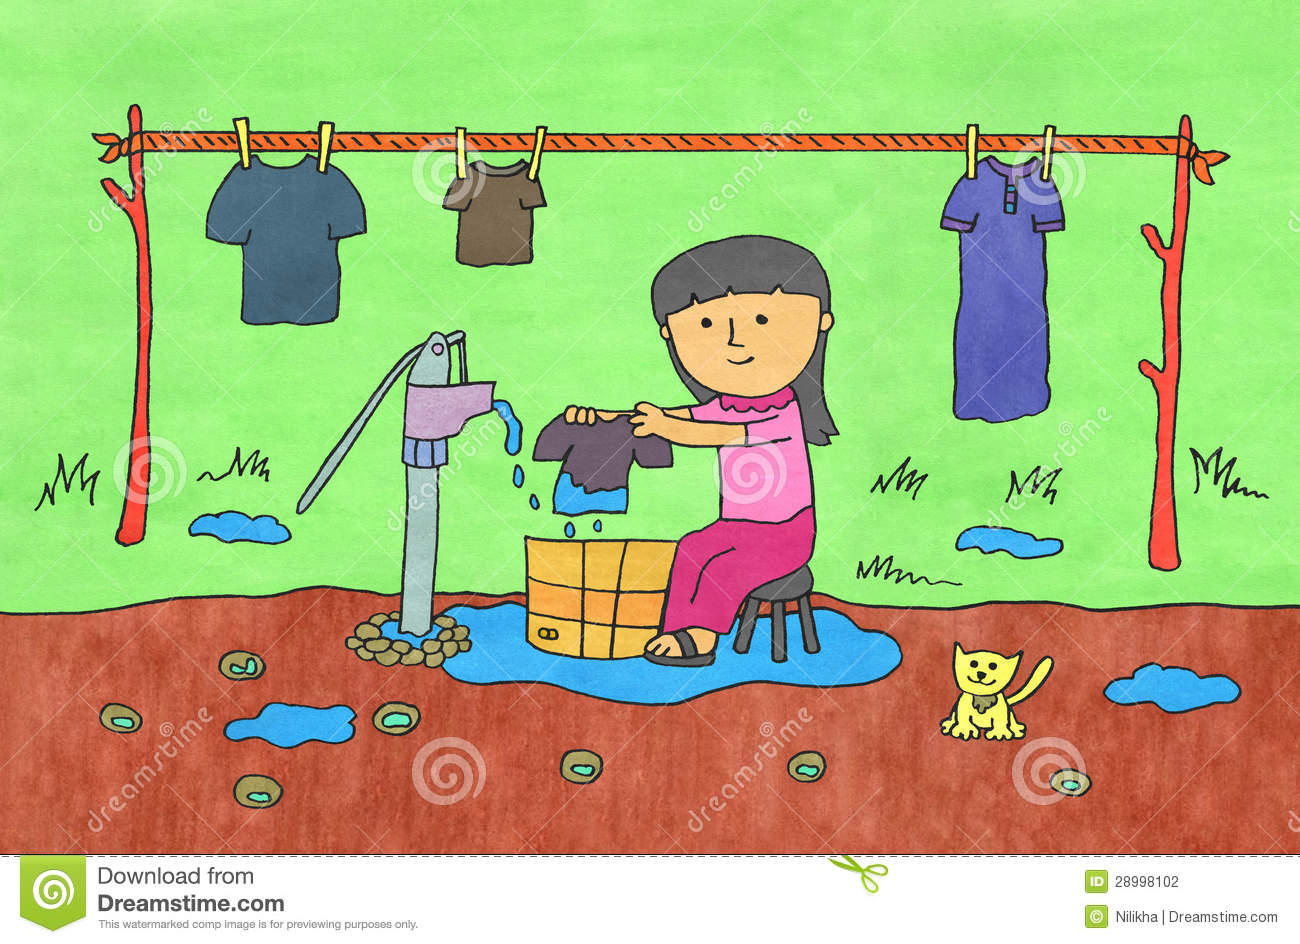 jpg transparent library Of for washing clothes. Wash clipart uses water